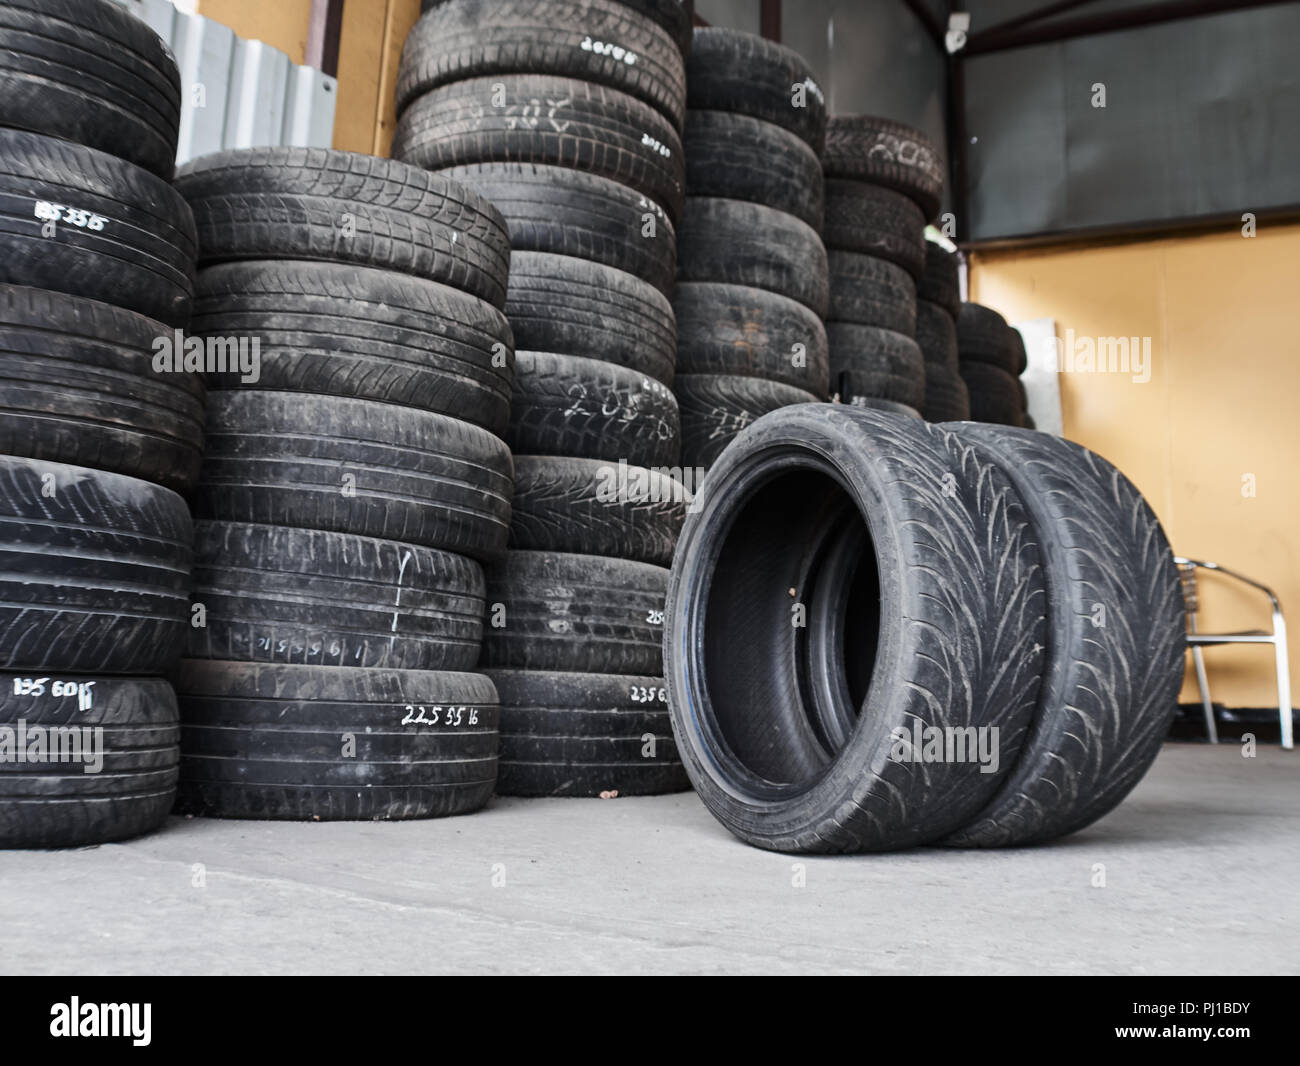 Used car tires stacked in piles at junkyard. Old wheels recycling and utilization concepr - Stock Image